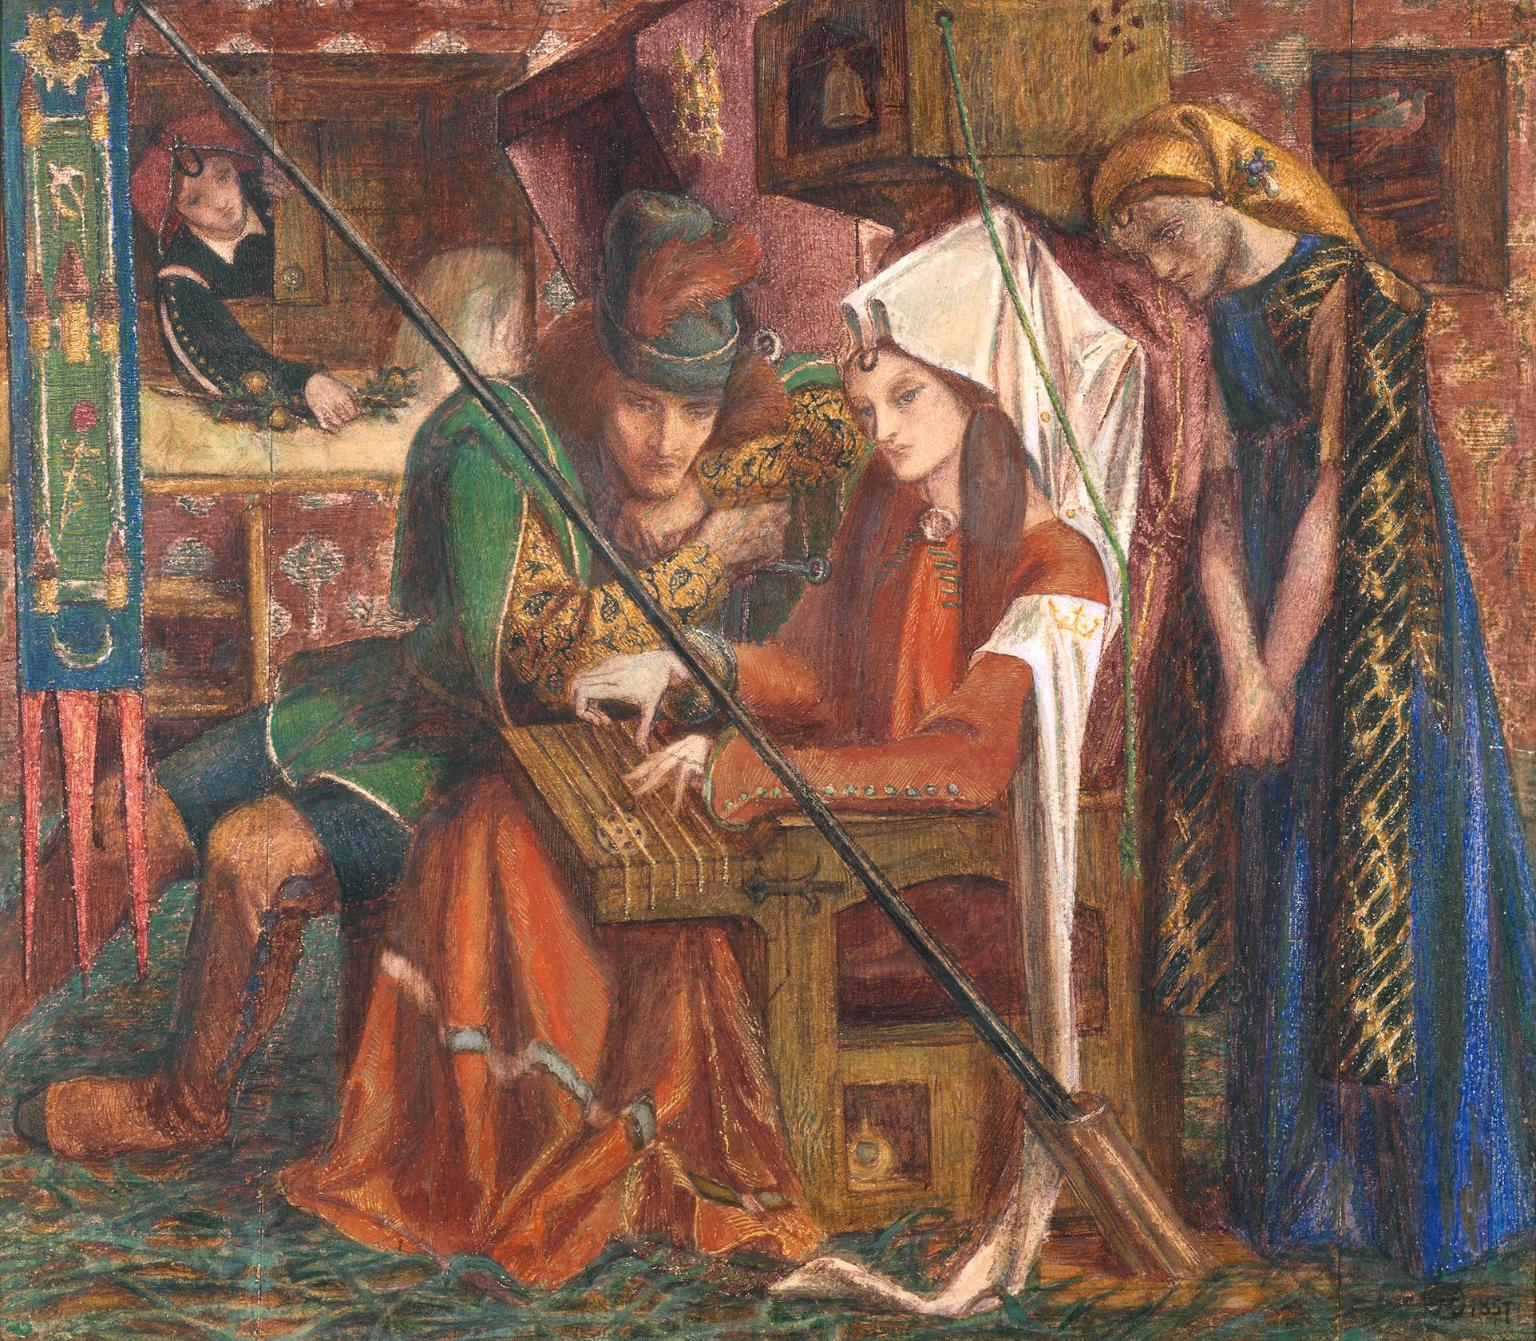 https://i1.wp.com/upload.wikimedia.org/wikipedia/commons/4/44/Dante_Gabriel_Rossetti_The_Tune_of_Seven_Towers.jpg